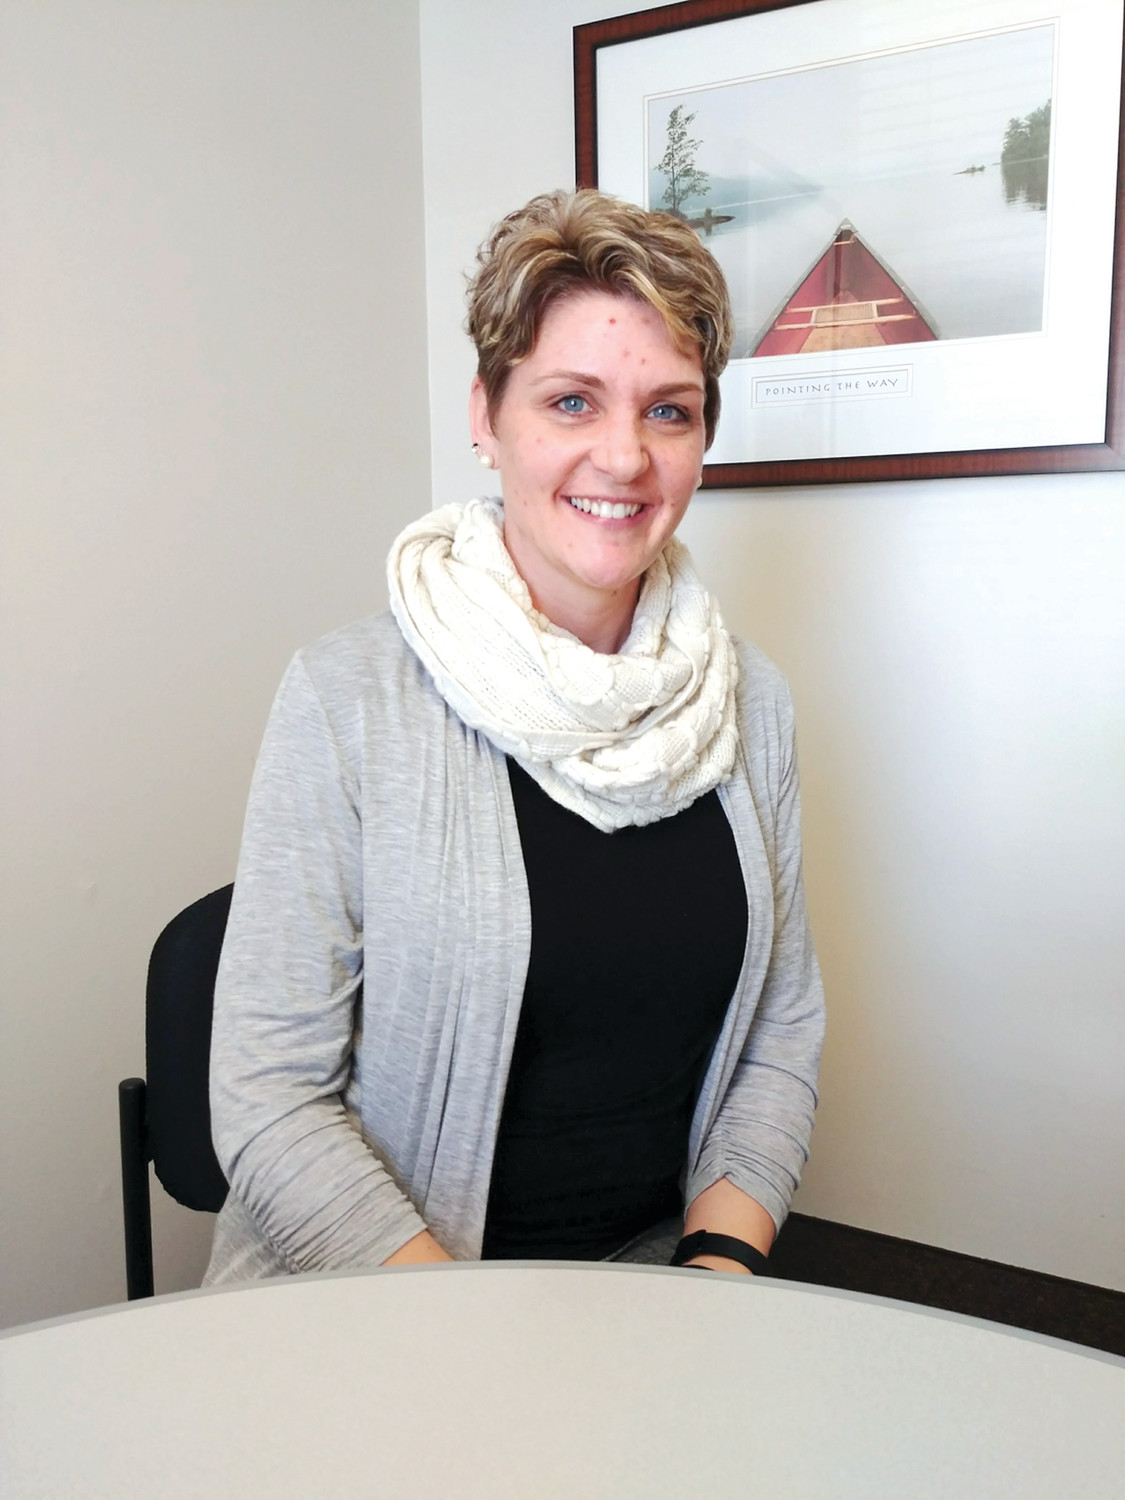 HHPCRI'S NEWEST EMPLOYEE: Jennifer Grace has taken on a new position as Volunteer Coordinator for Hope Hospice and Pallative Care RI, but not before having her own very personal, positive experiences in utilizing services from them first.